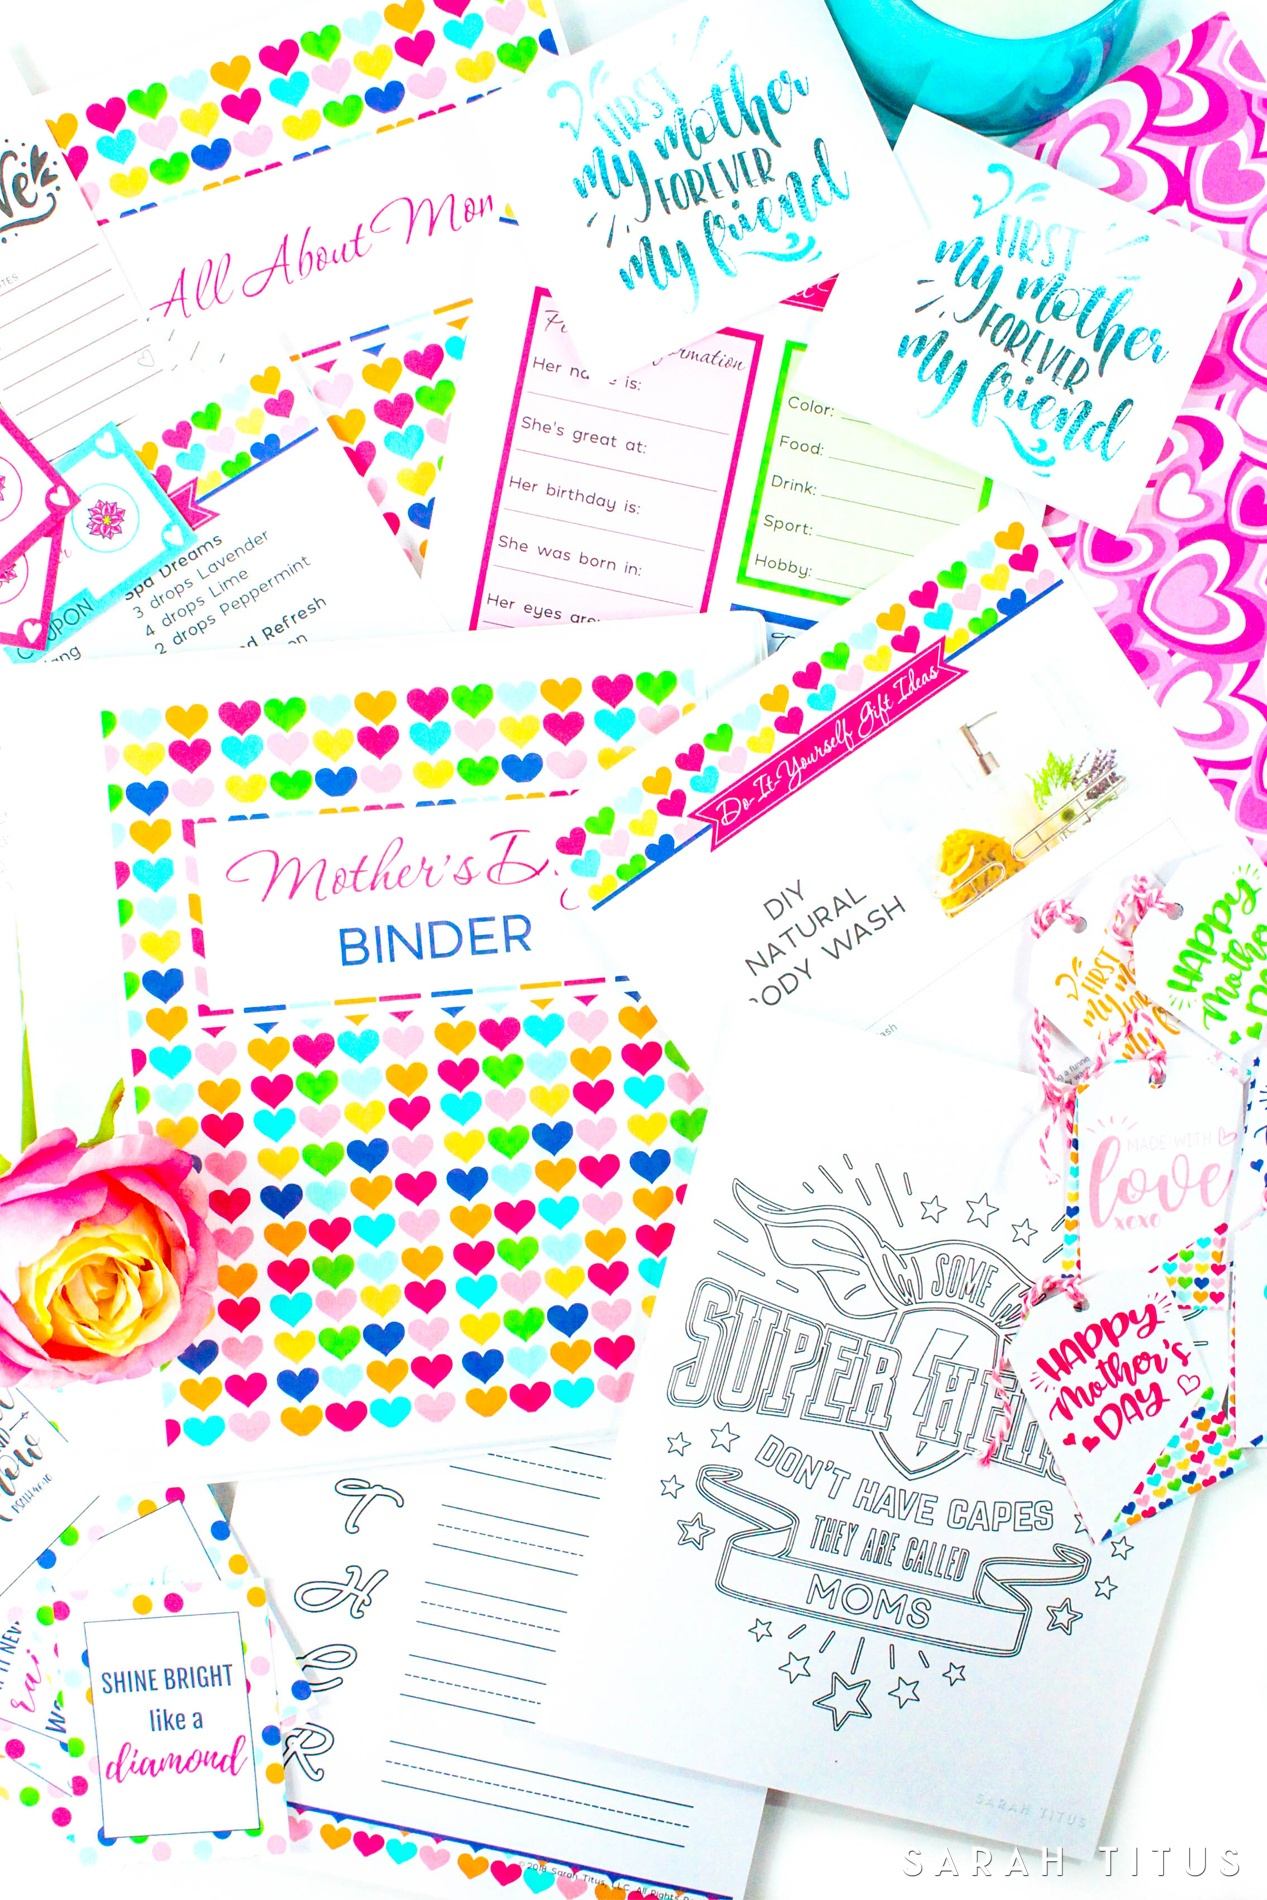 Random Acts Of Kindness Free Printable Cards - Sarah Titus - Free Printable Kindness Cards